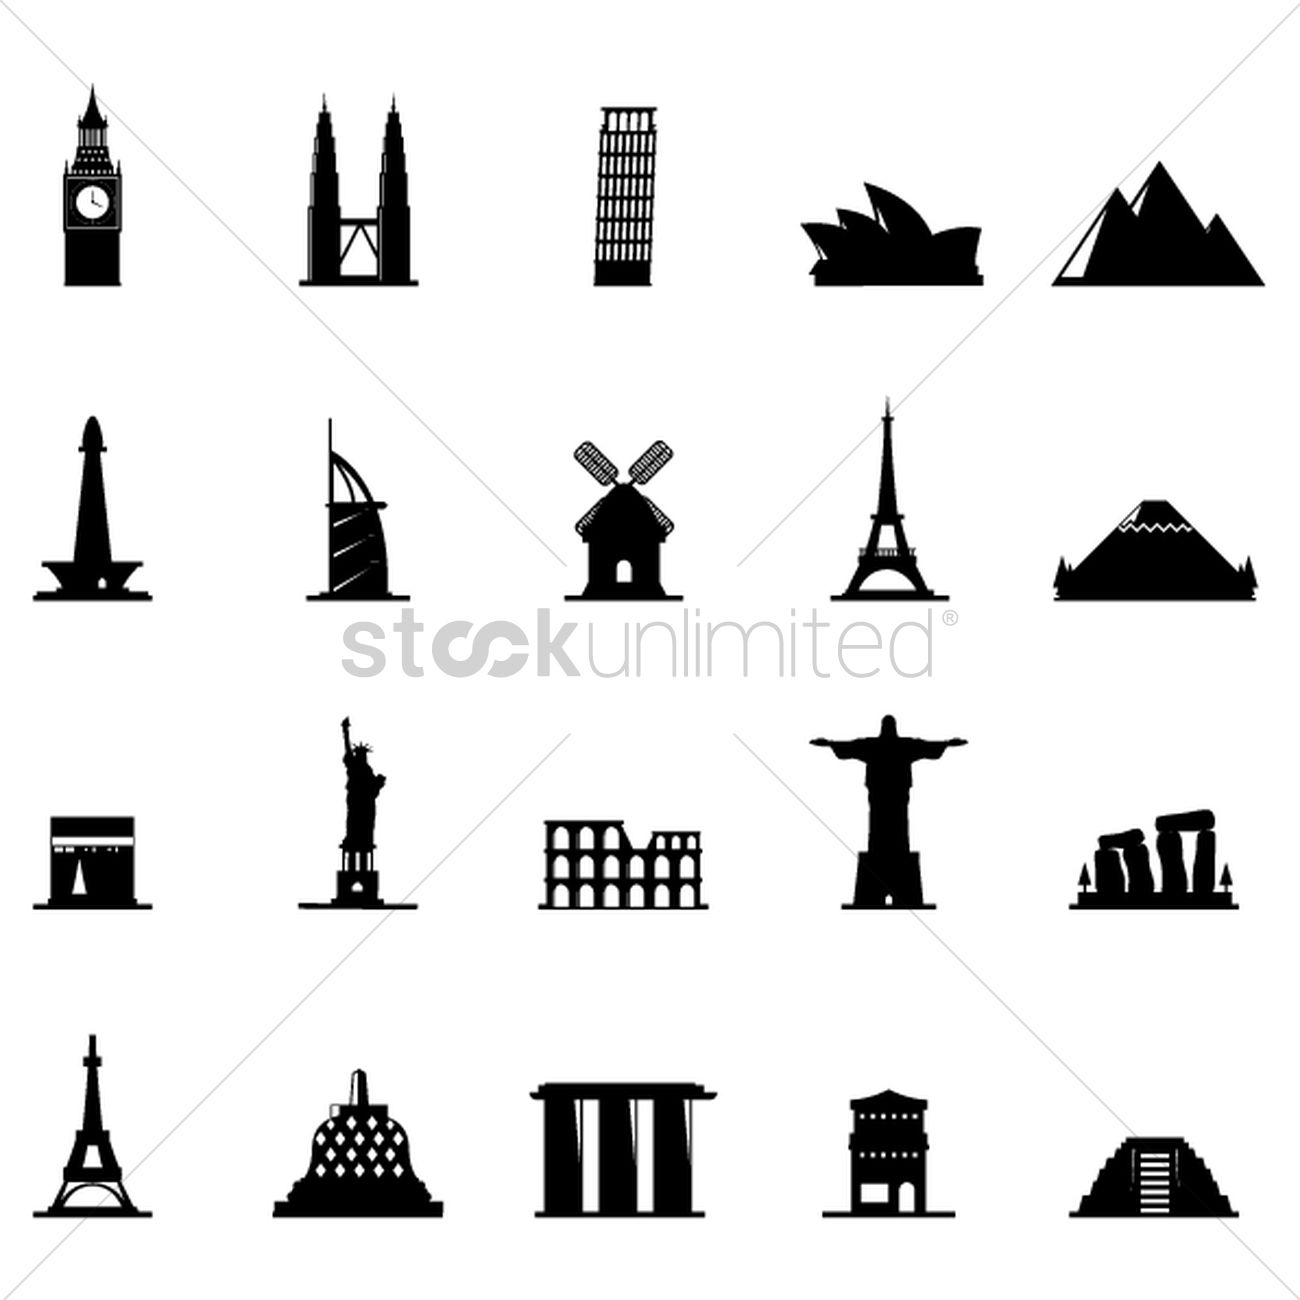 Free Silhouette of famous landmarks Vector Image - 1501388